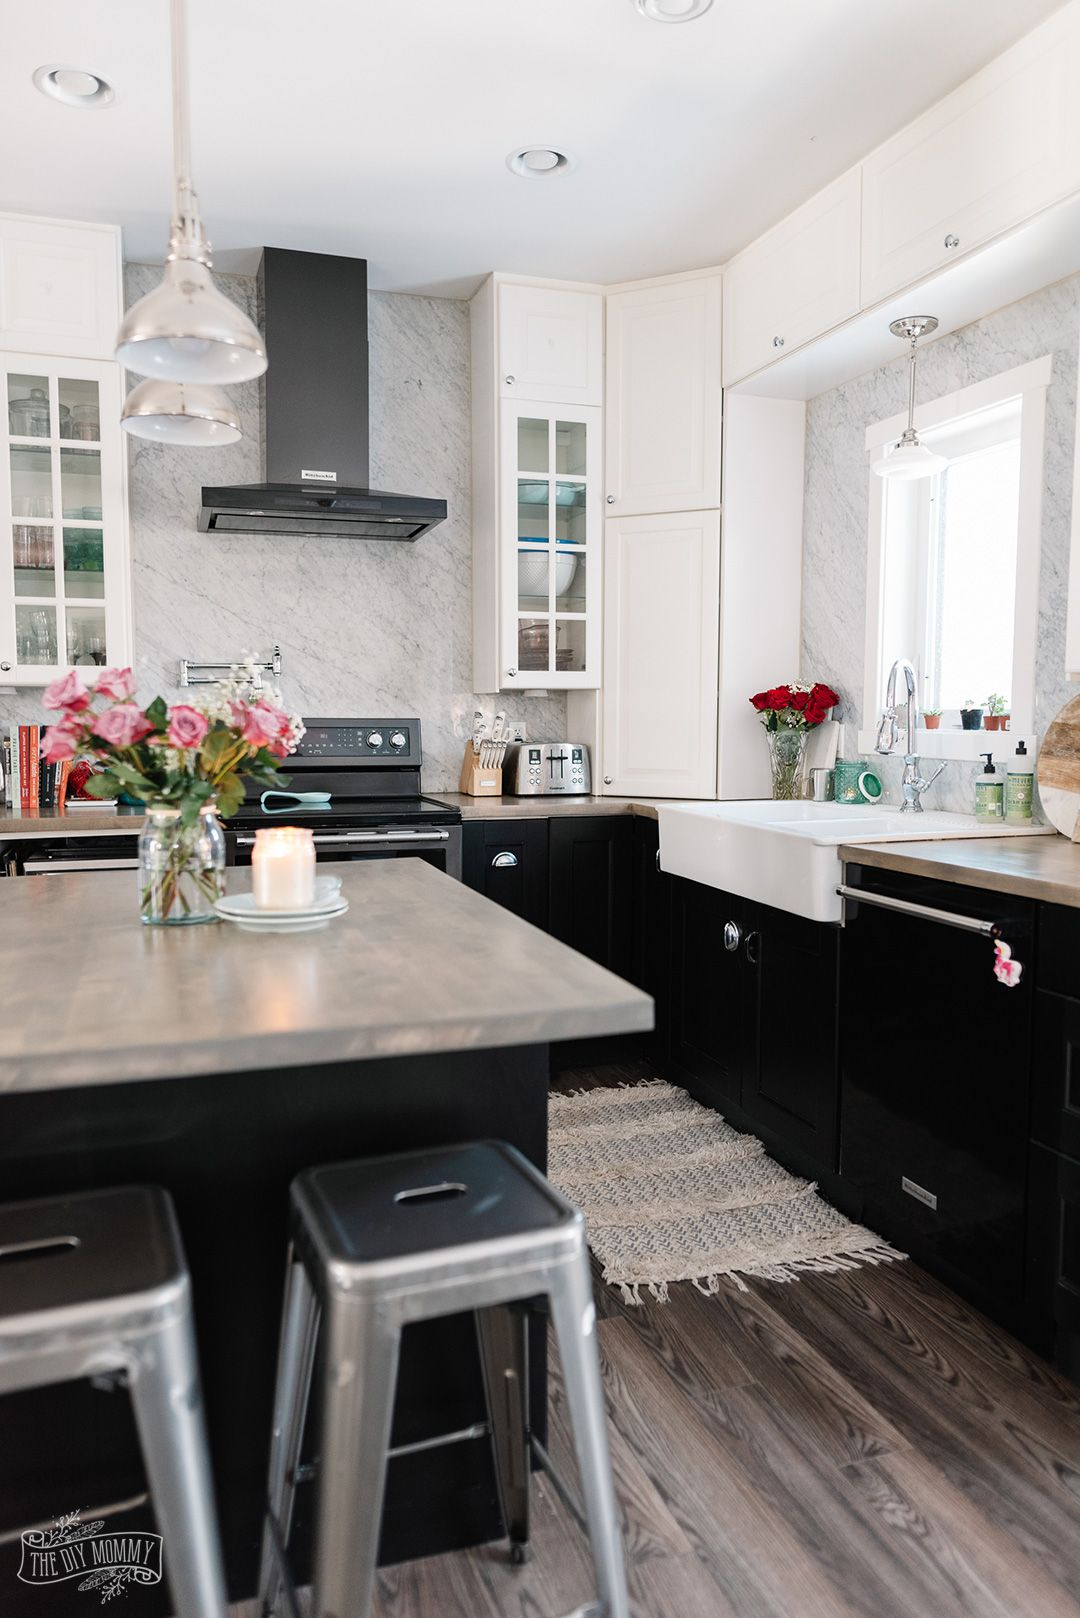 Ikea Kitchen Review 7 Years Later The Diy Mommy Ikea Kitchen Reviews Kitchen Design Small Ikea Kitchen